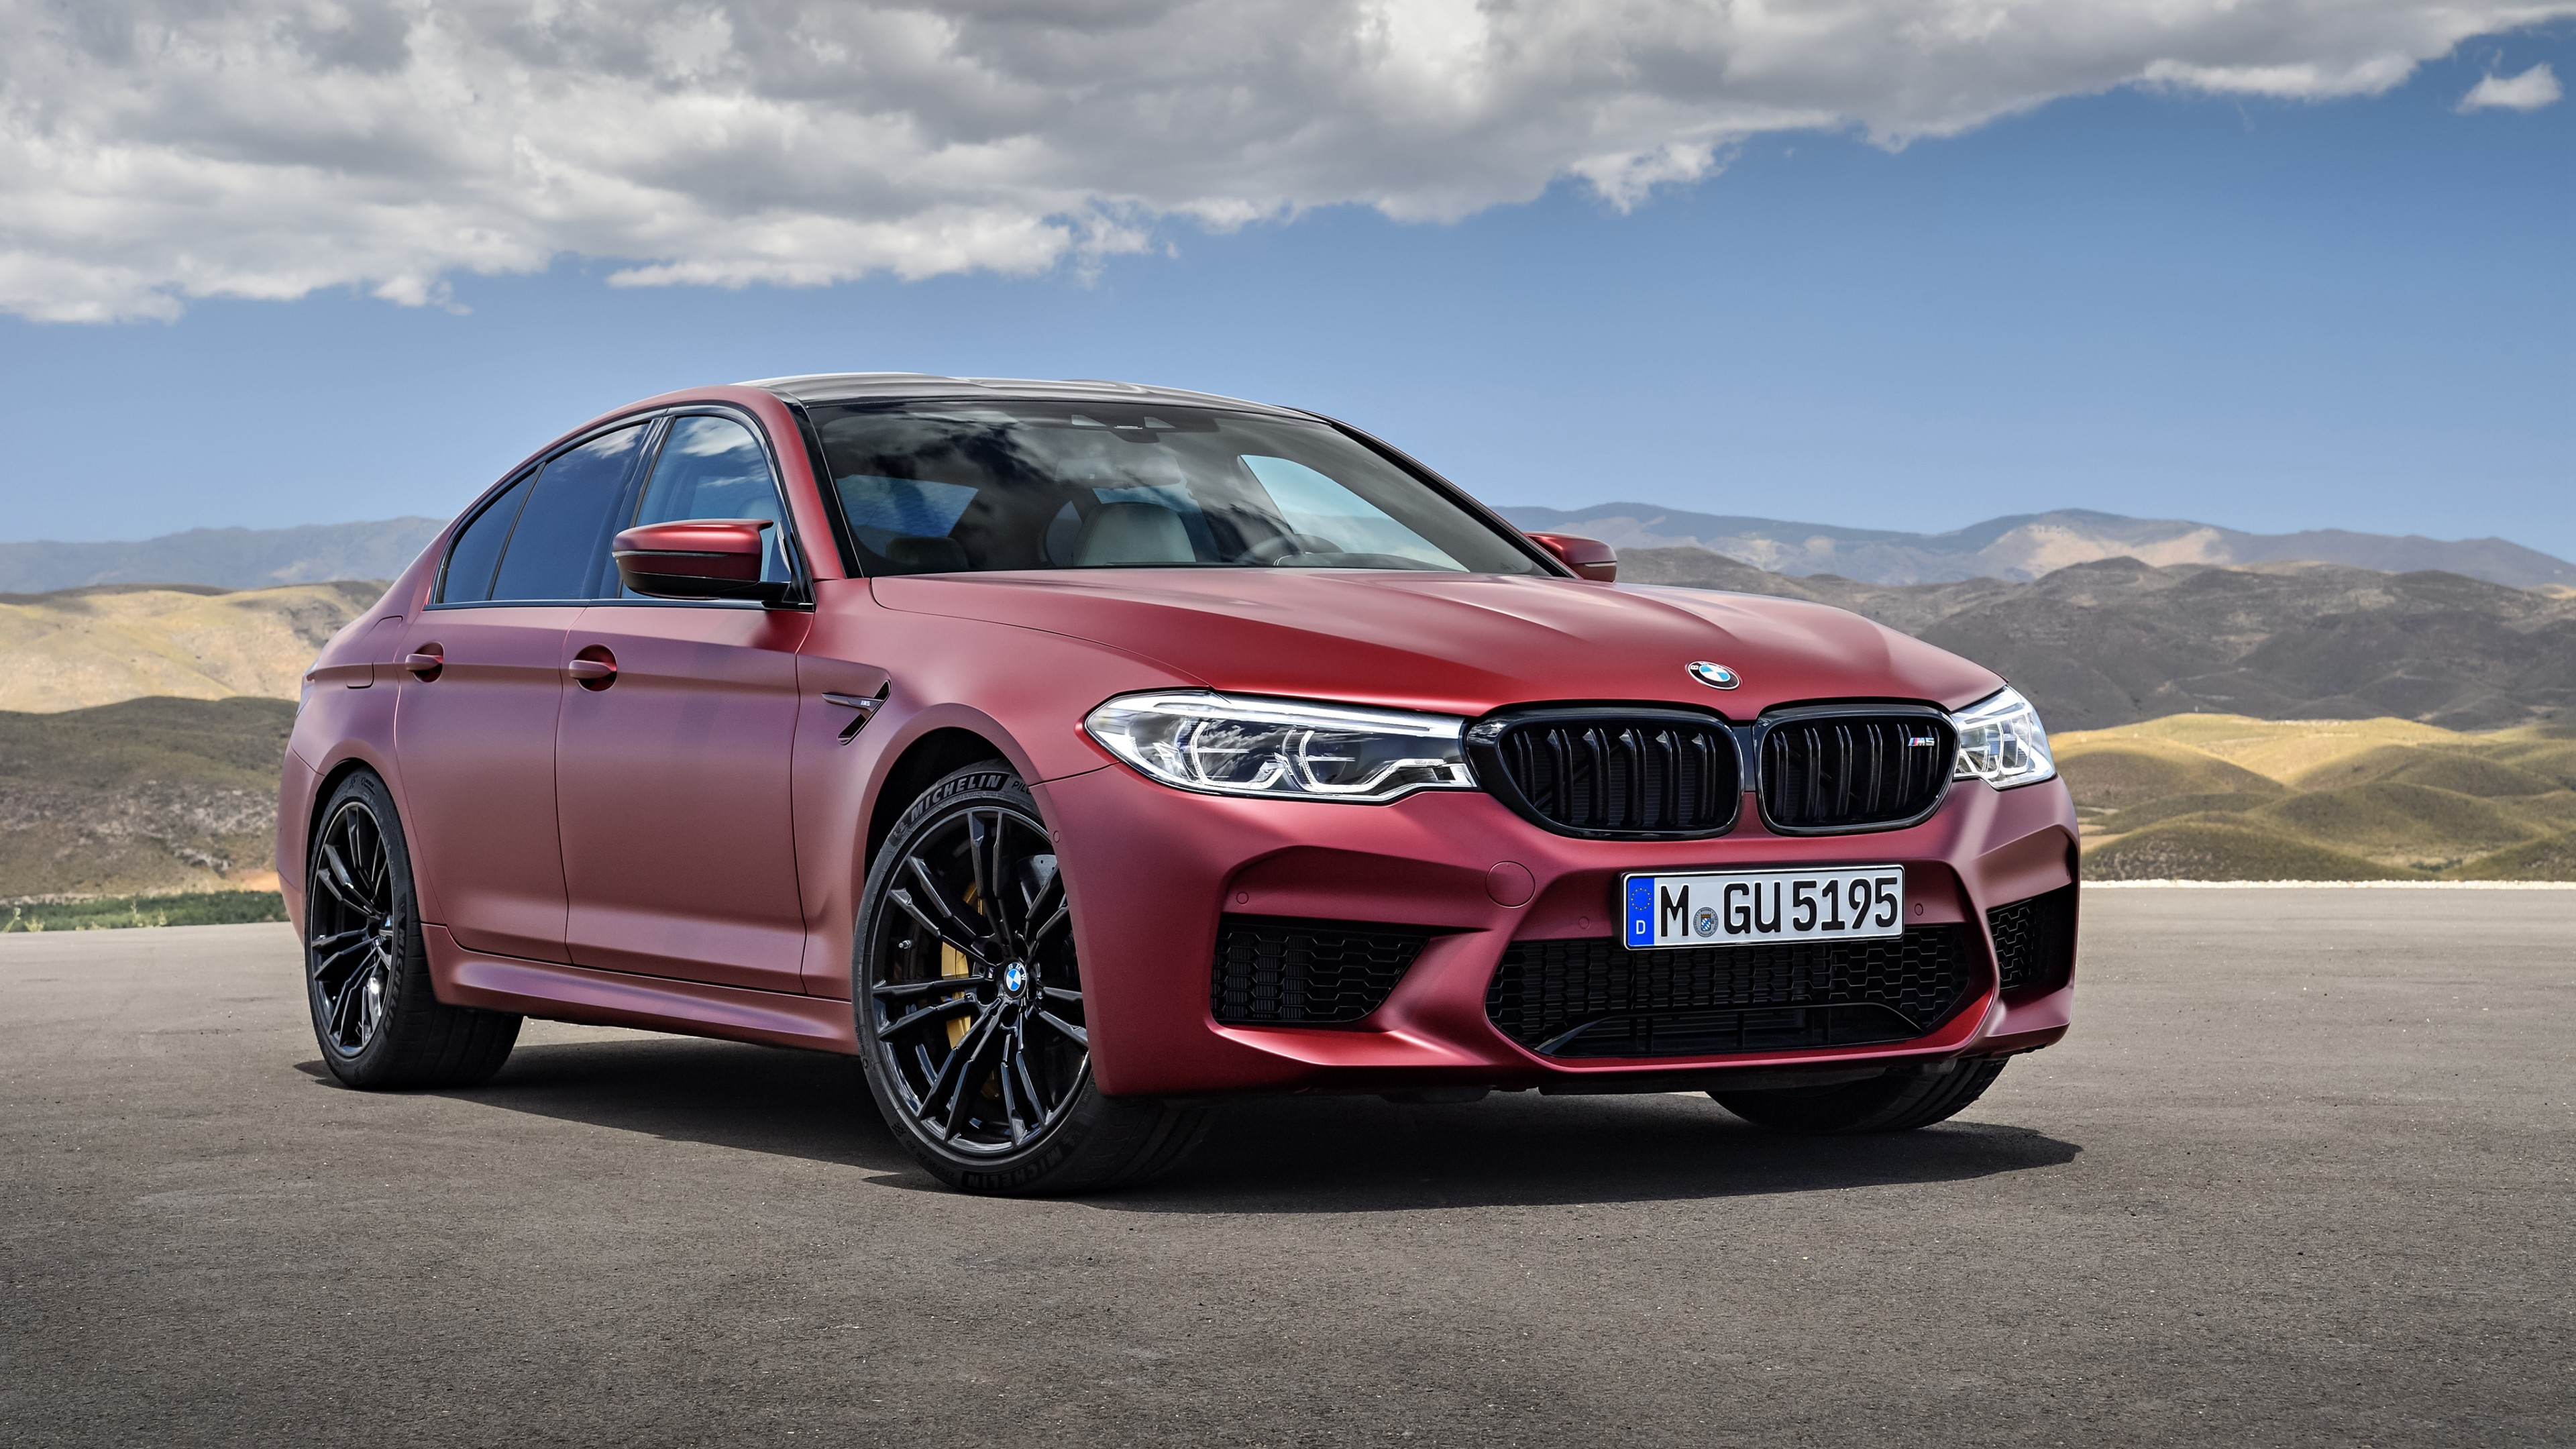 2018 Bmw M5 First Edition Wallpaper Hd Car Wallpapers